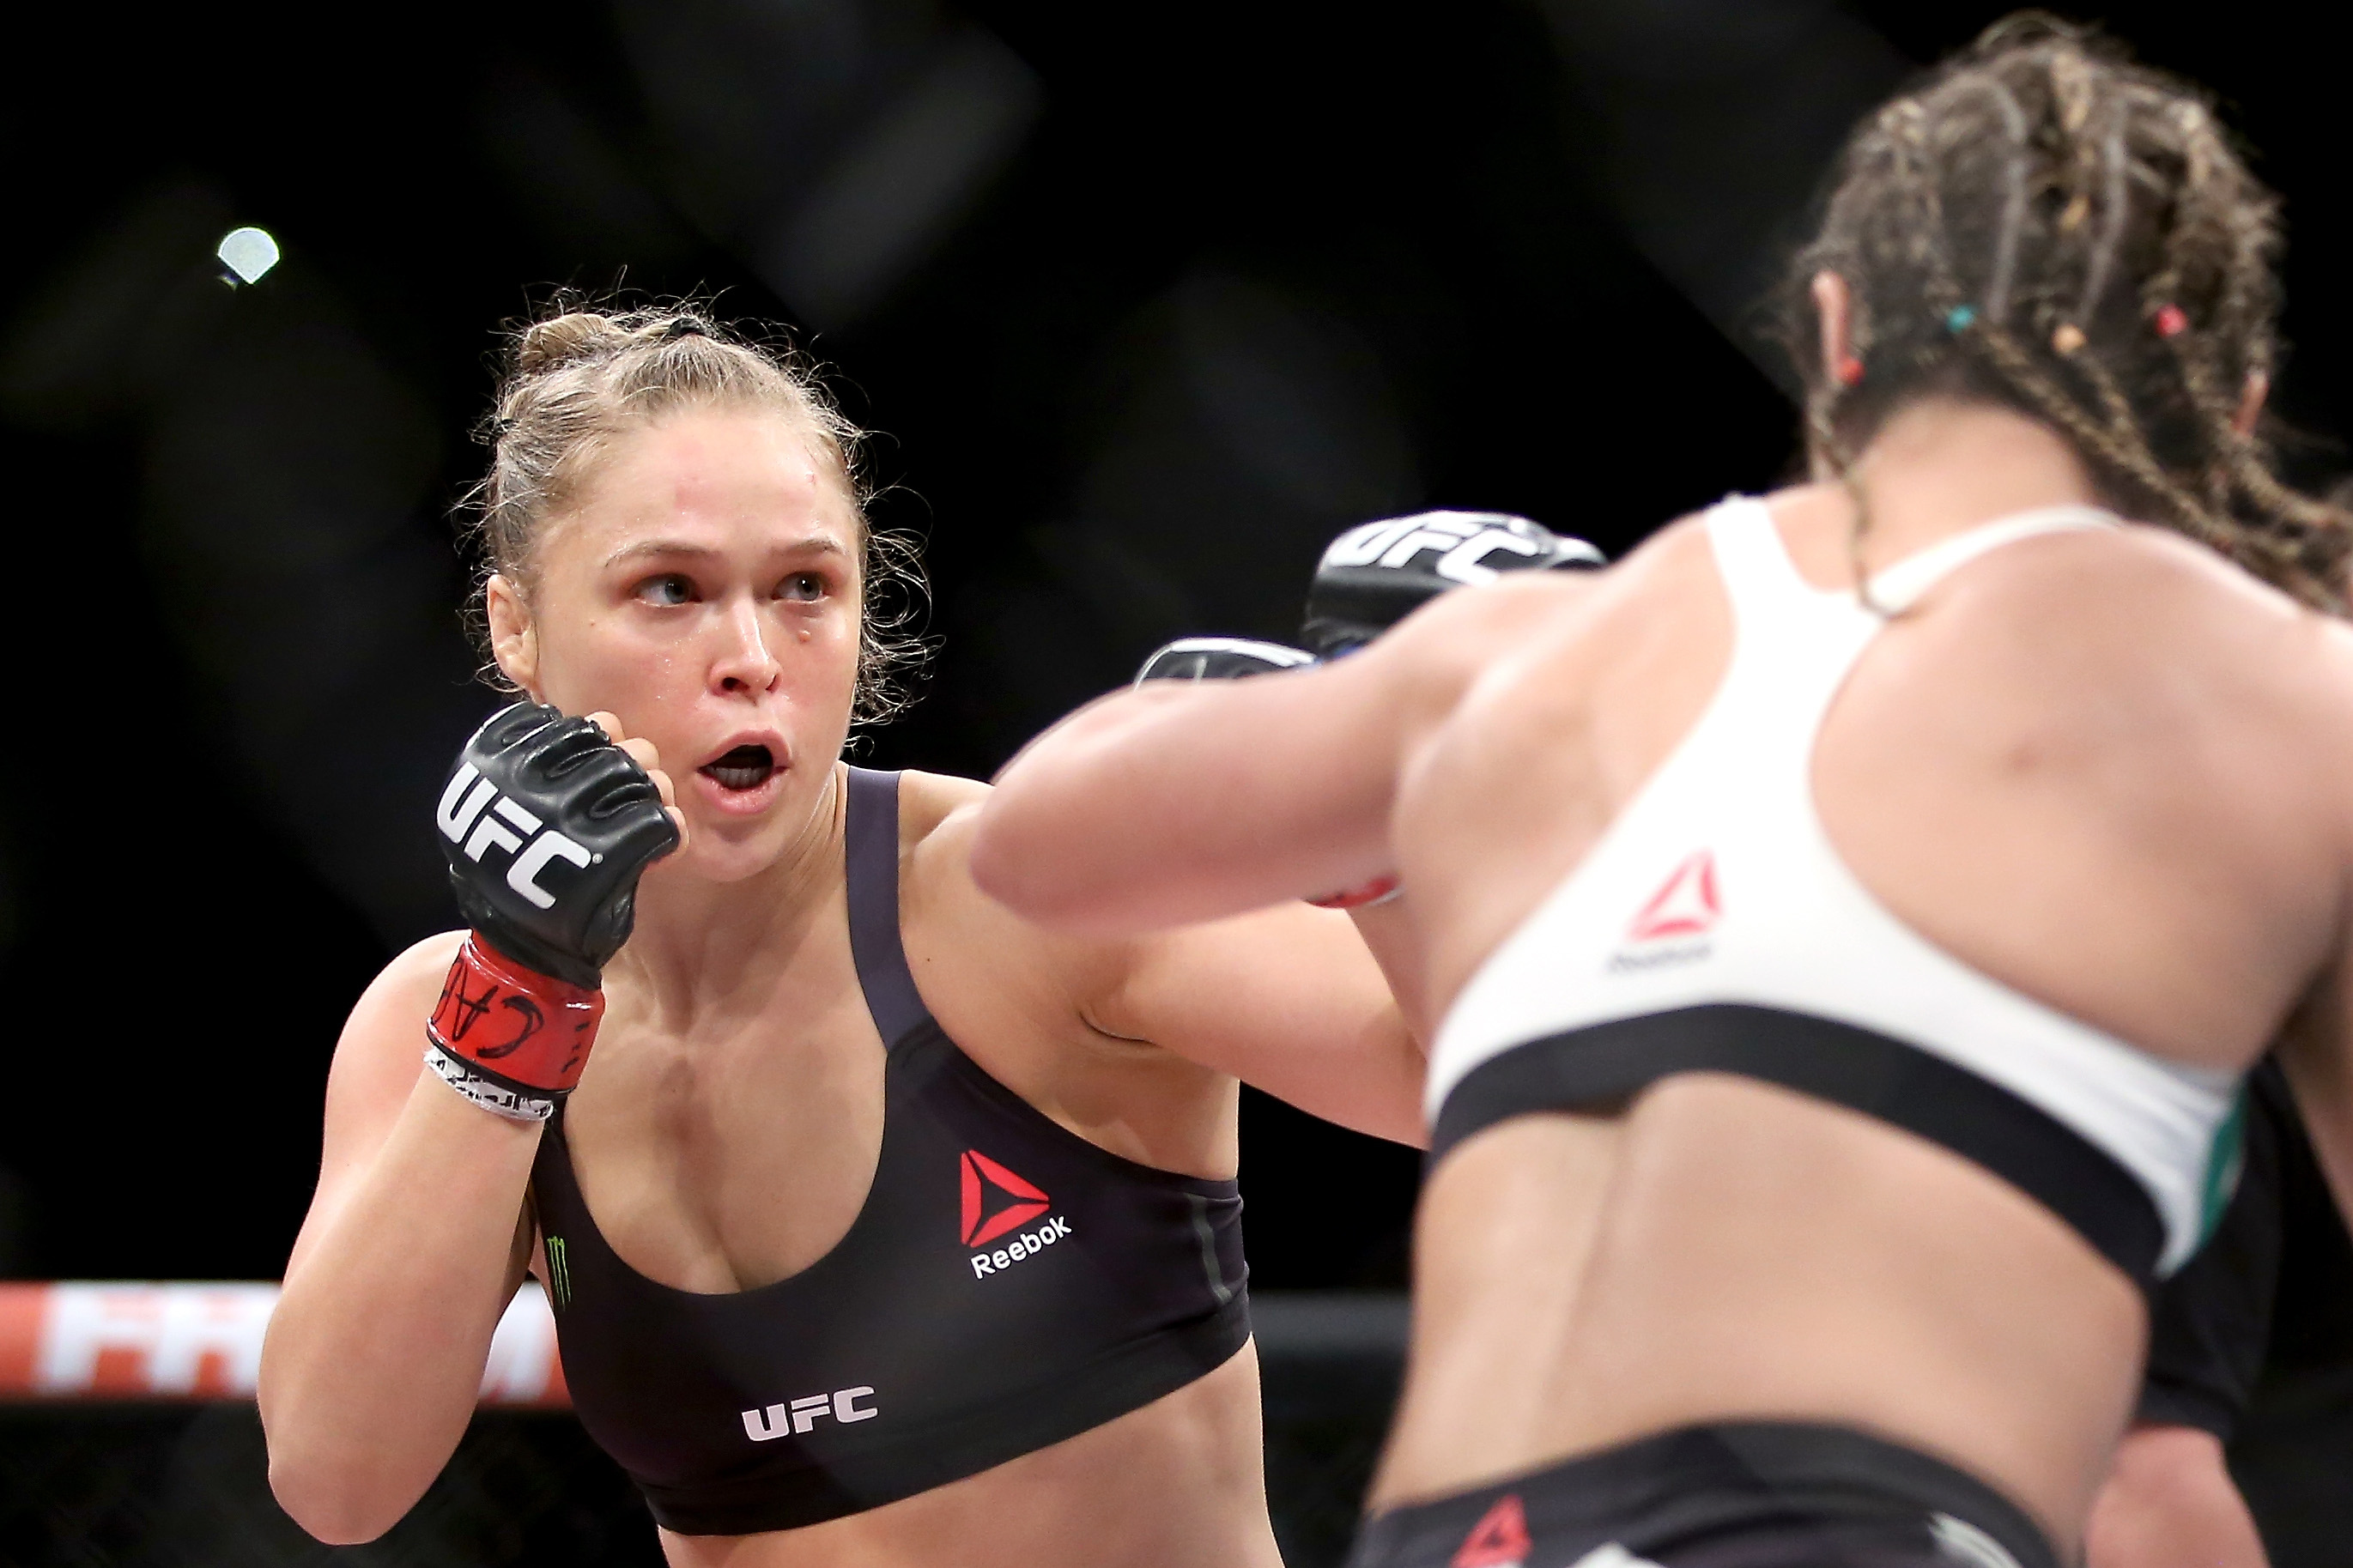 Peter ronda rousey porn beautiful